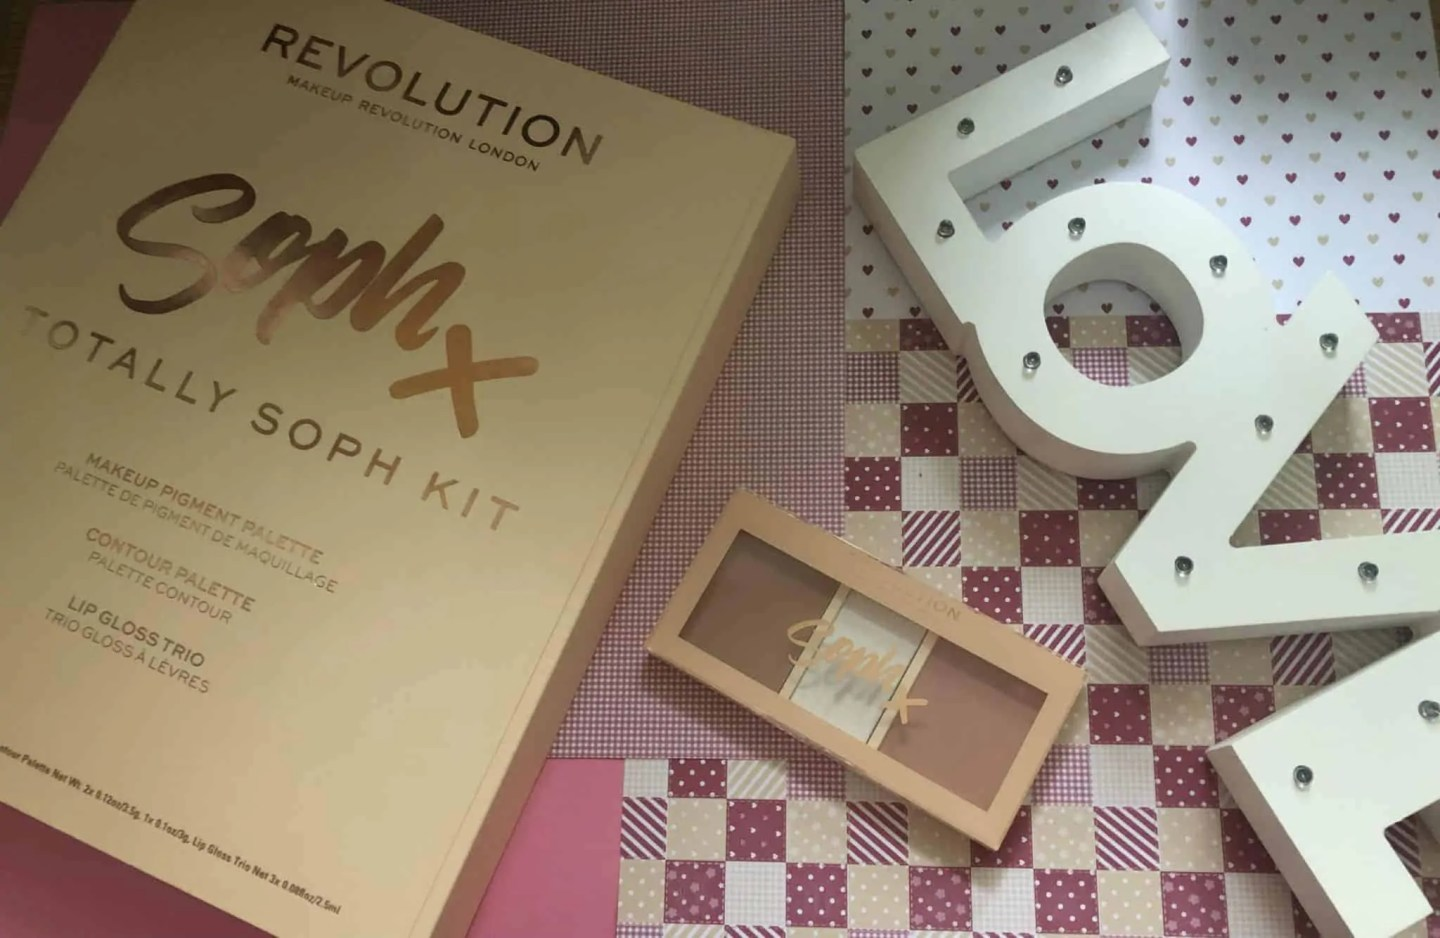 Win Revolution Totally Soph kit highlight and contour palette